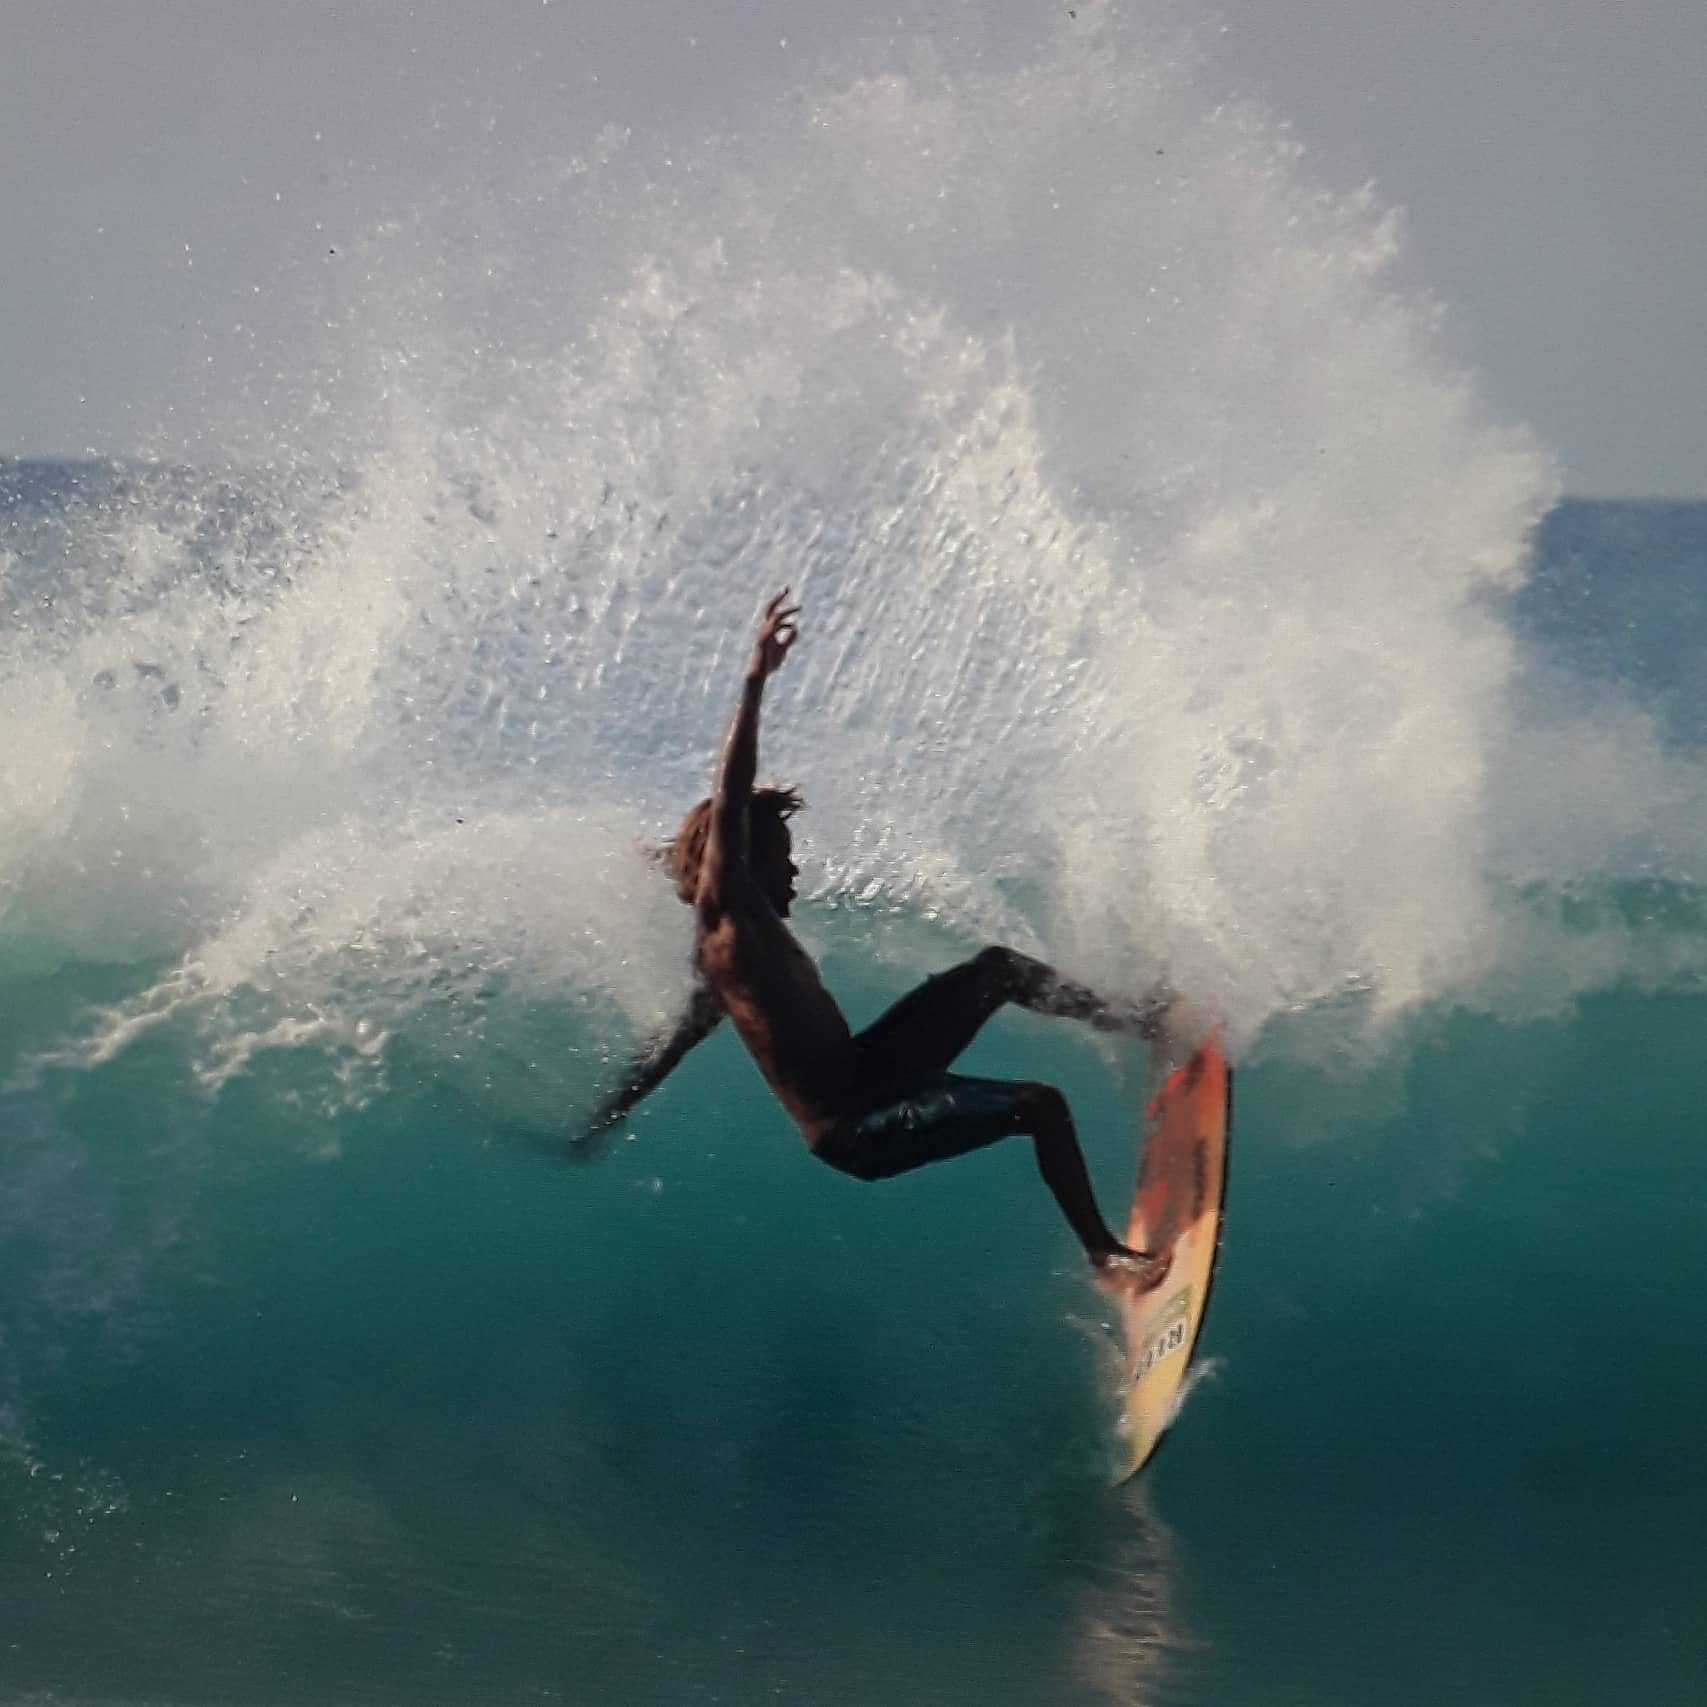 Surfing in Jamaica - Image by Billy Mistic Wilmot